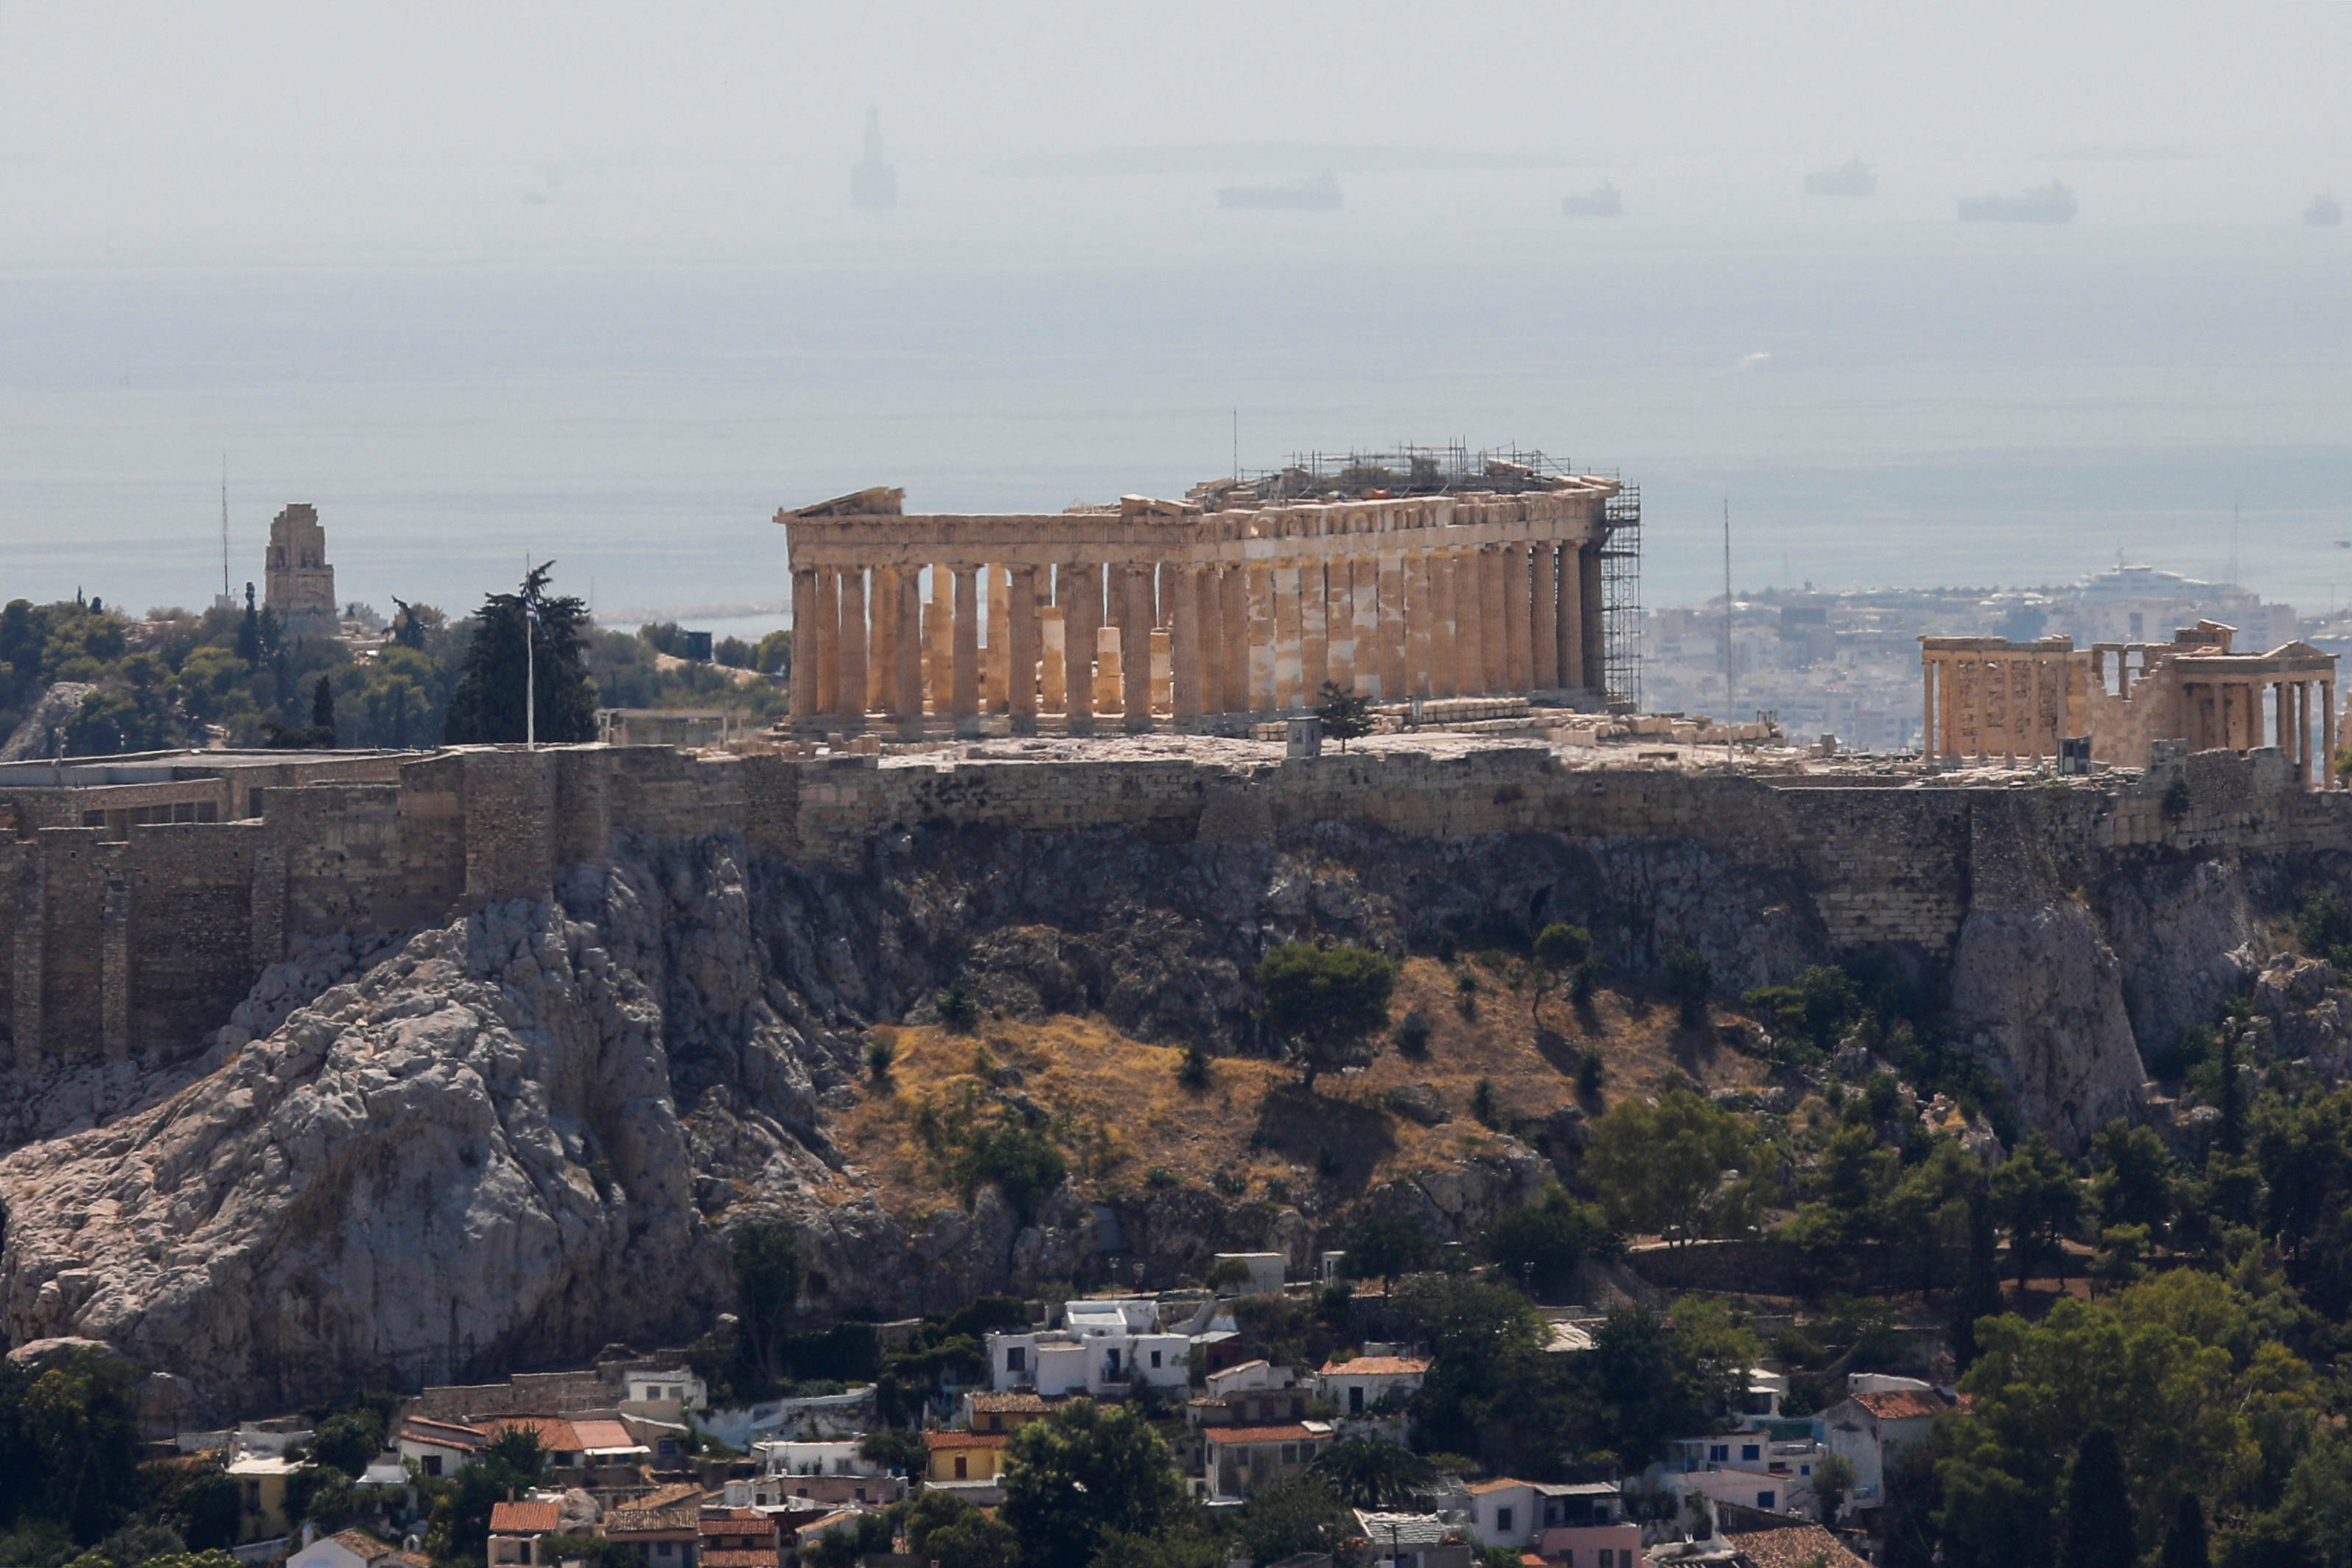 The Parthenon temple is seen atop the empty Acropolis hill archaeological site, closed to the public during a heatwave in Athens, Greece, July 30, 2021. REUTERS/Costas Baltas